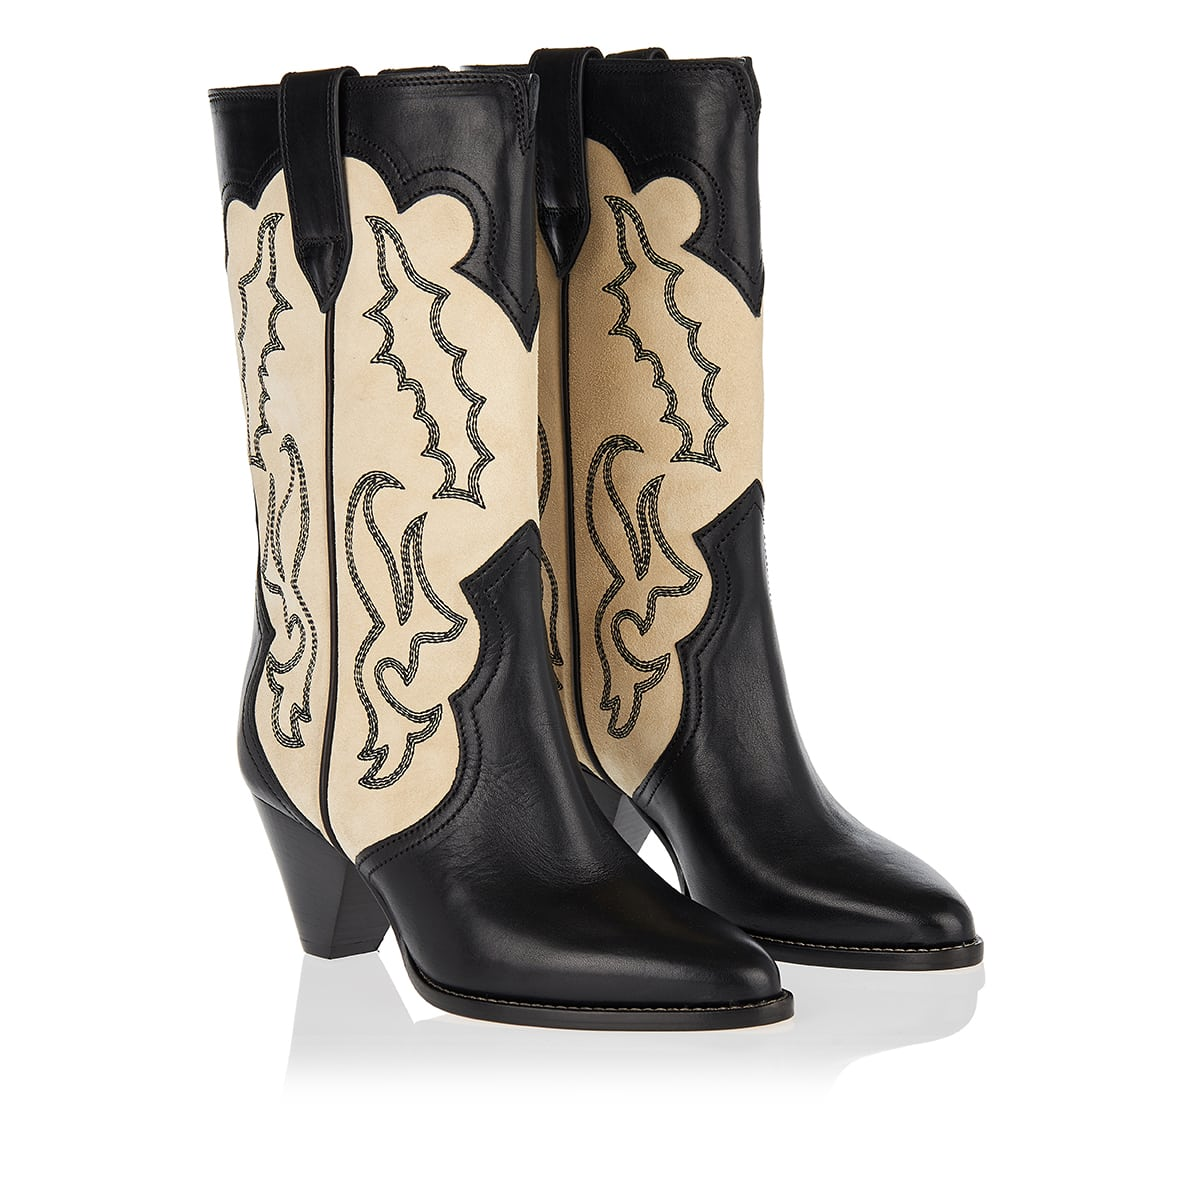 Suede and leather Western boots